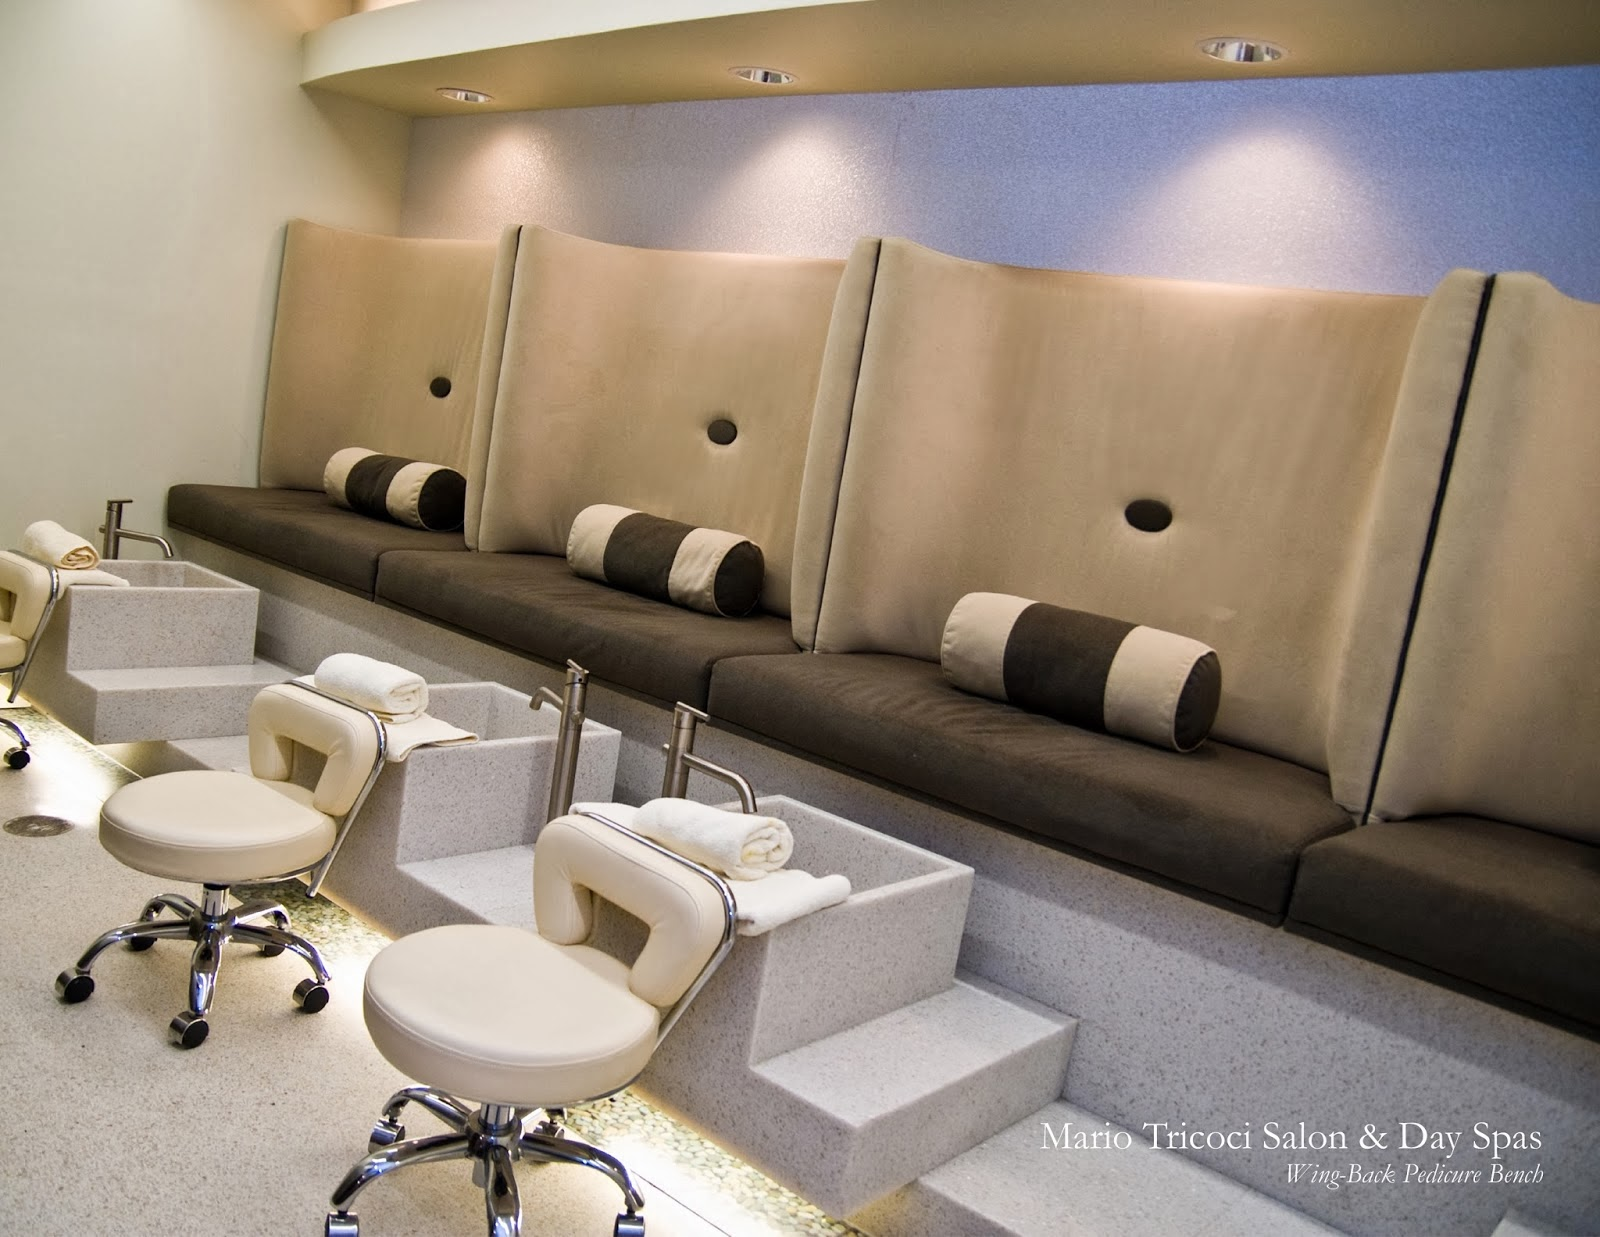 Pedicure Salon Michele Pelafas Nail Spa Salon Design